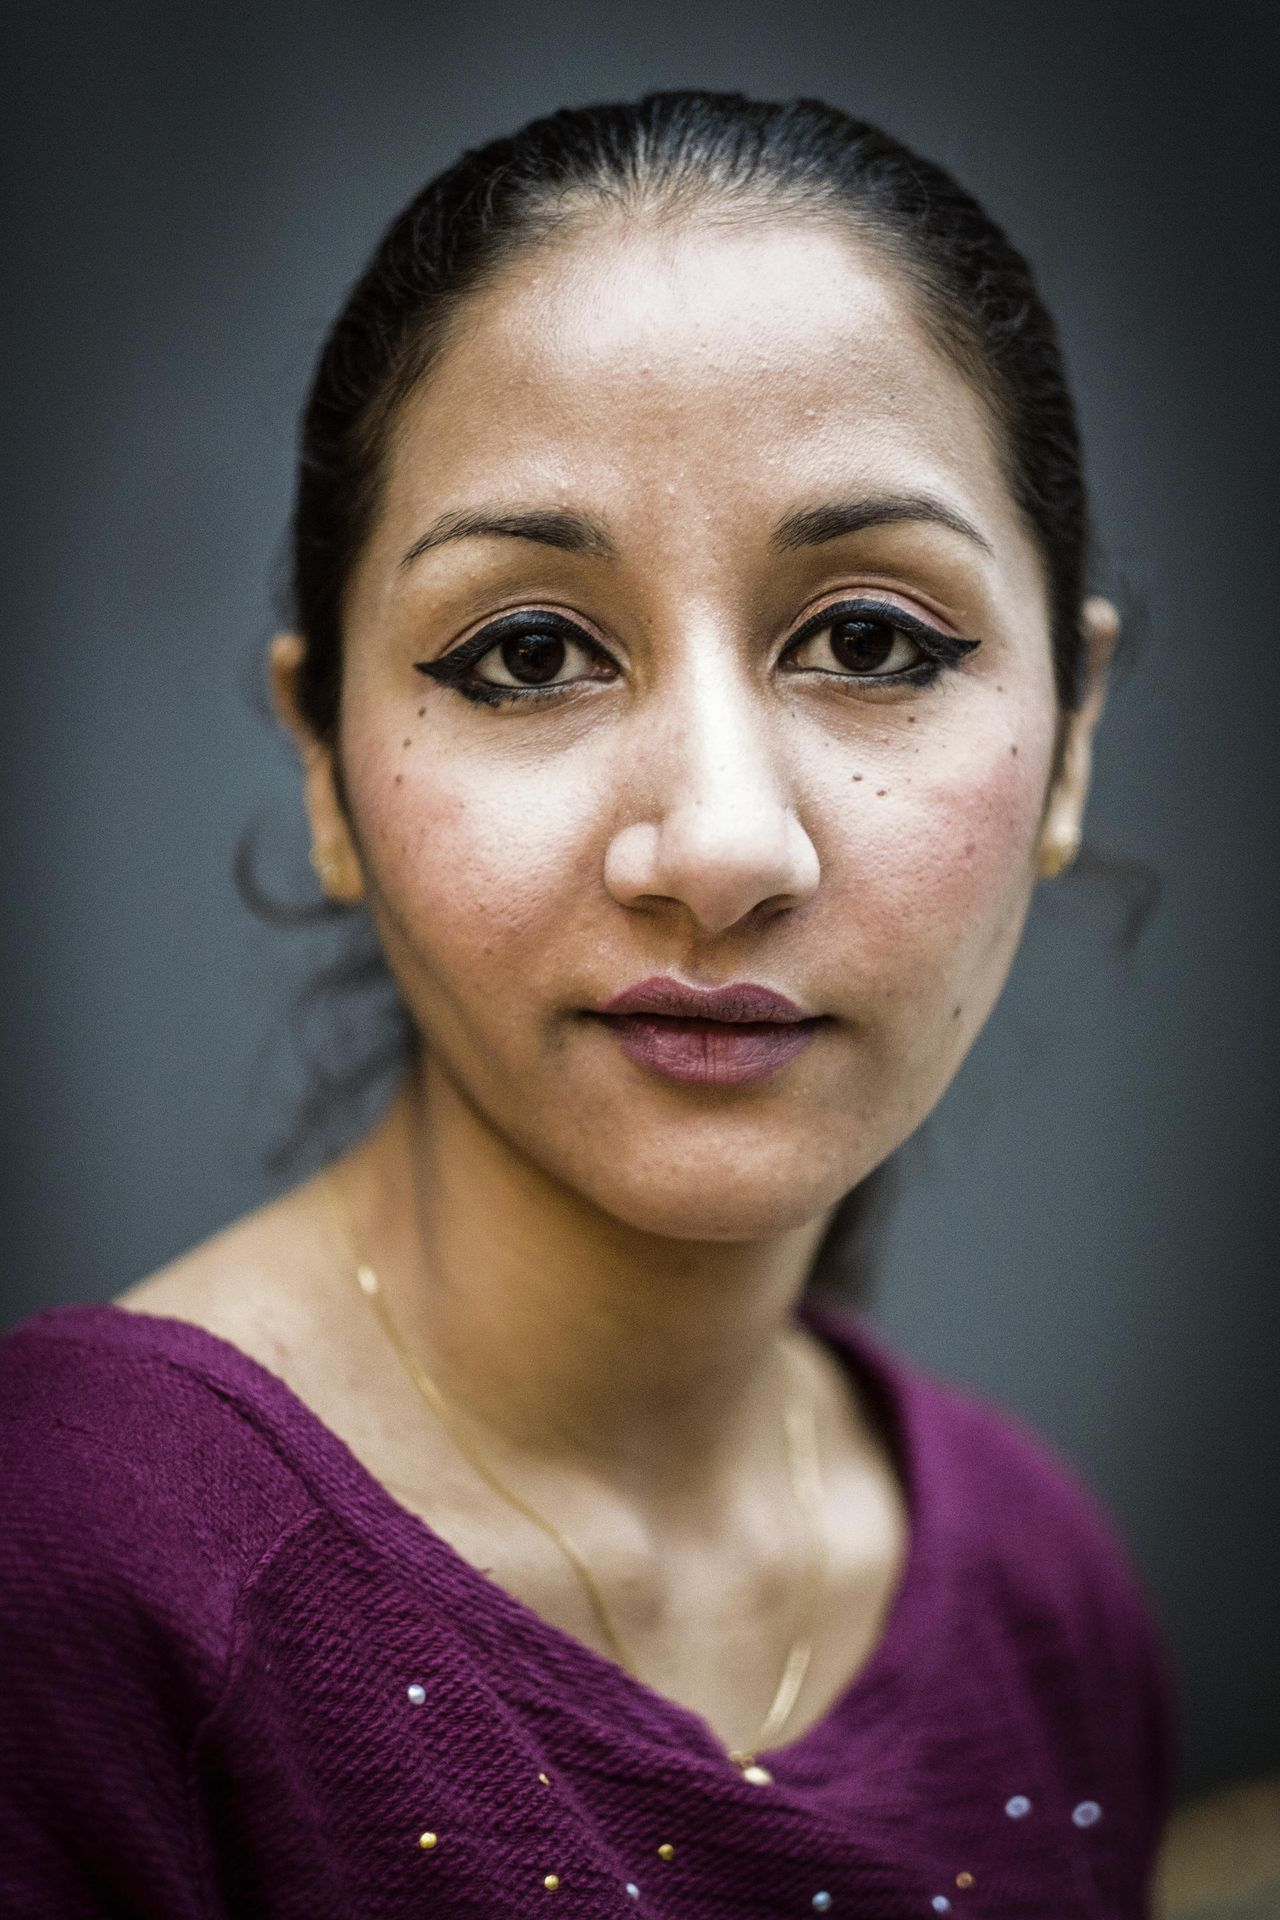 The Netherlands: Asylum for Fauzia Ilyas